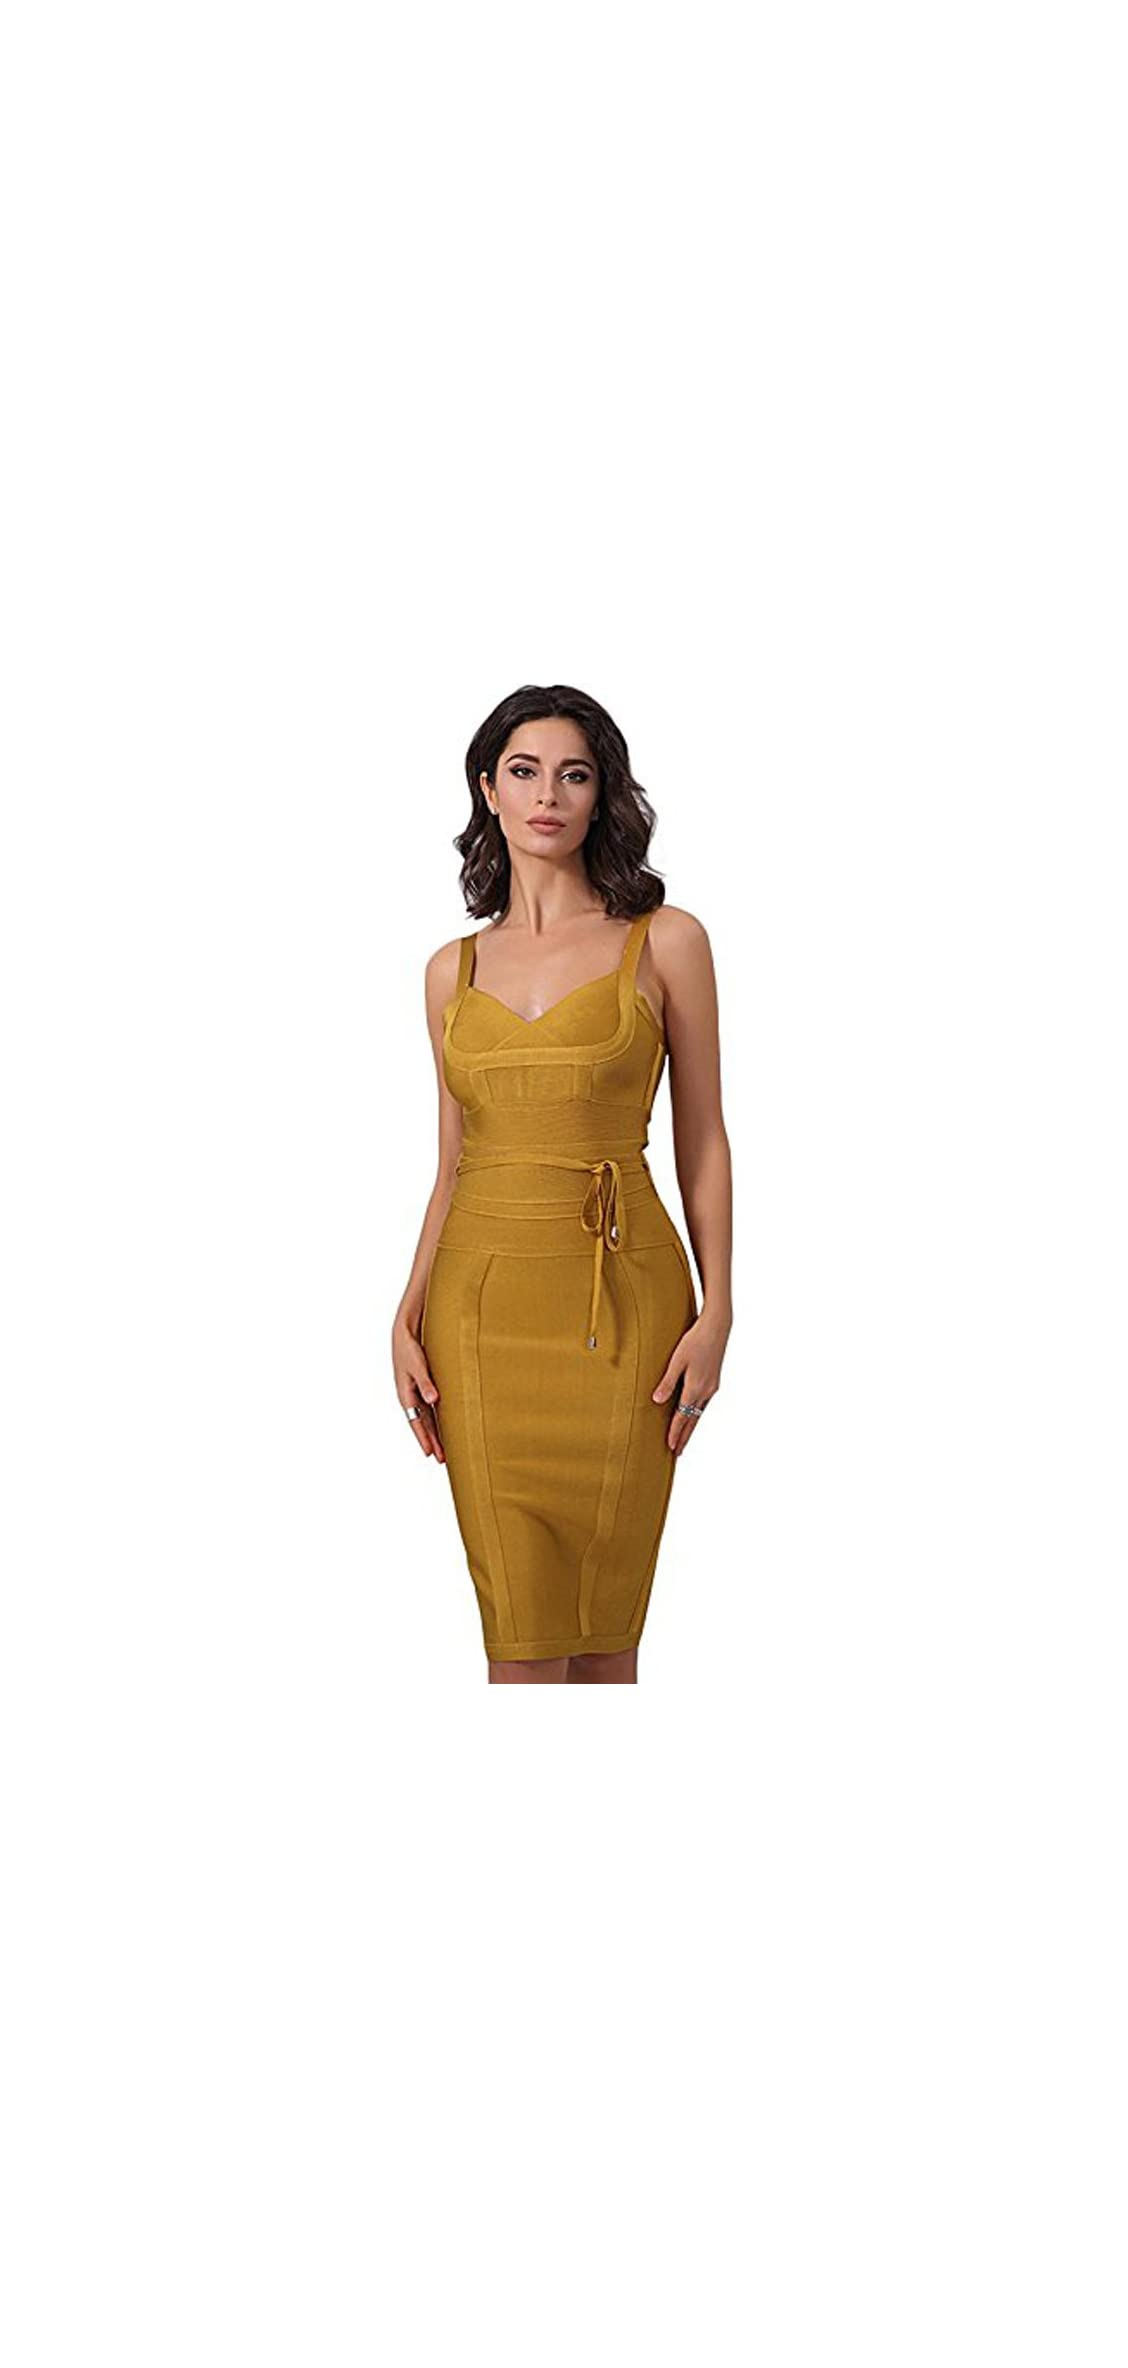 Women 's Spaghetti Strap Belt Detail Bandage Bodycon